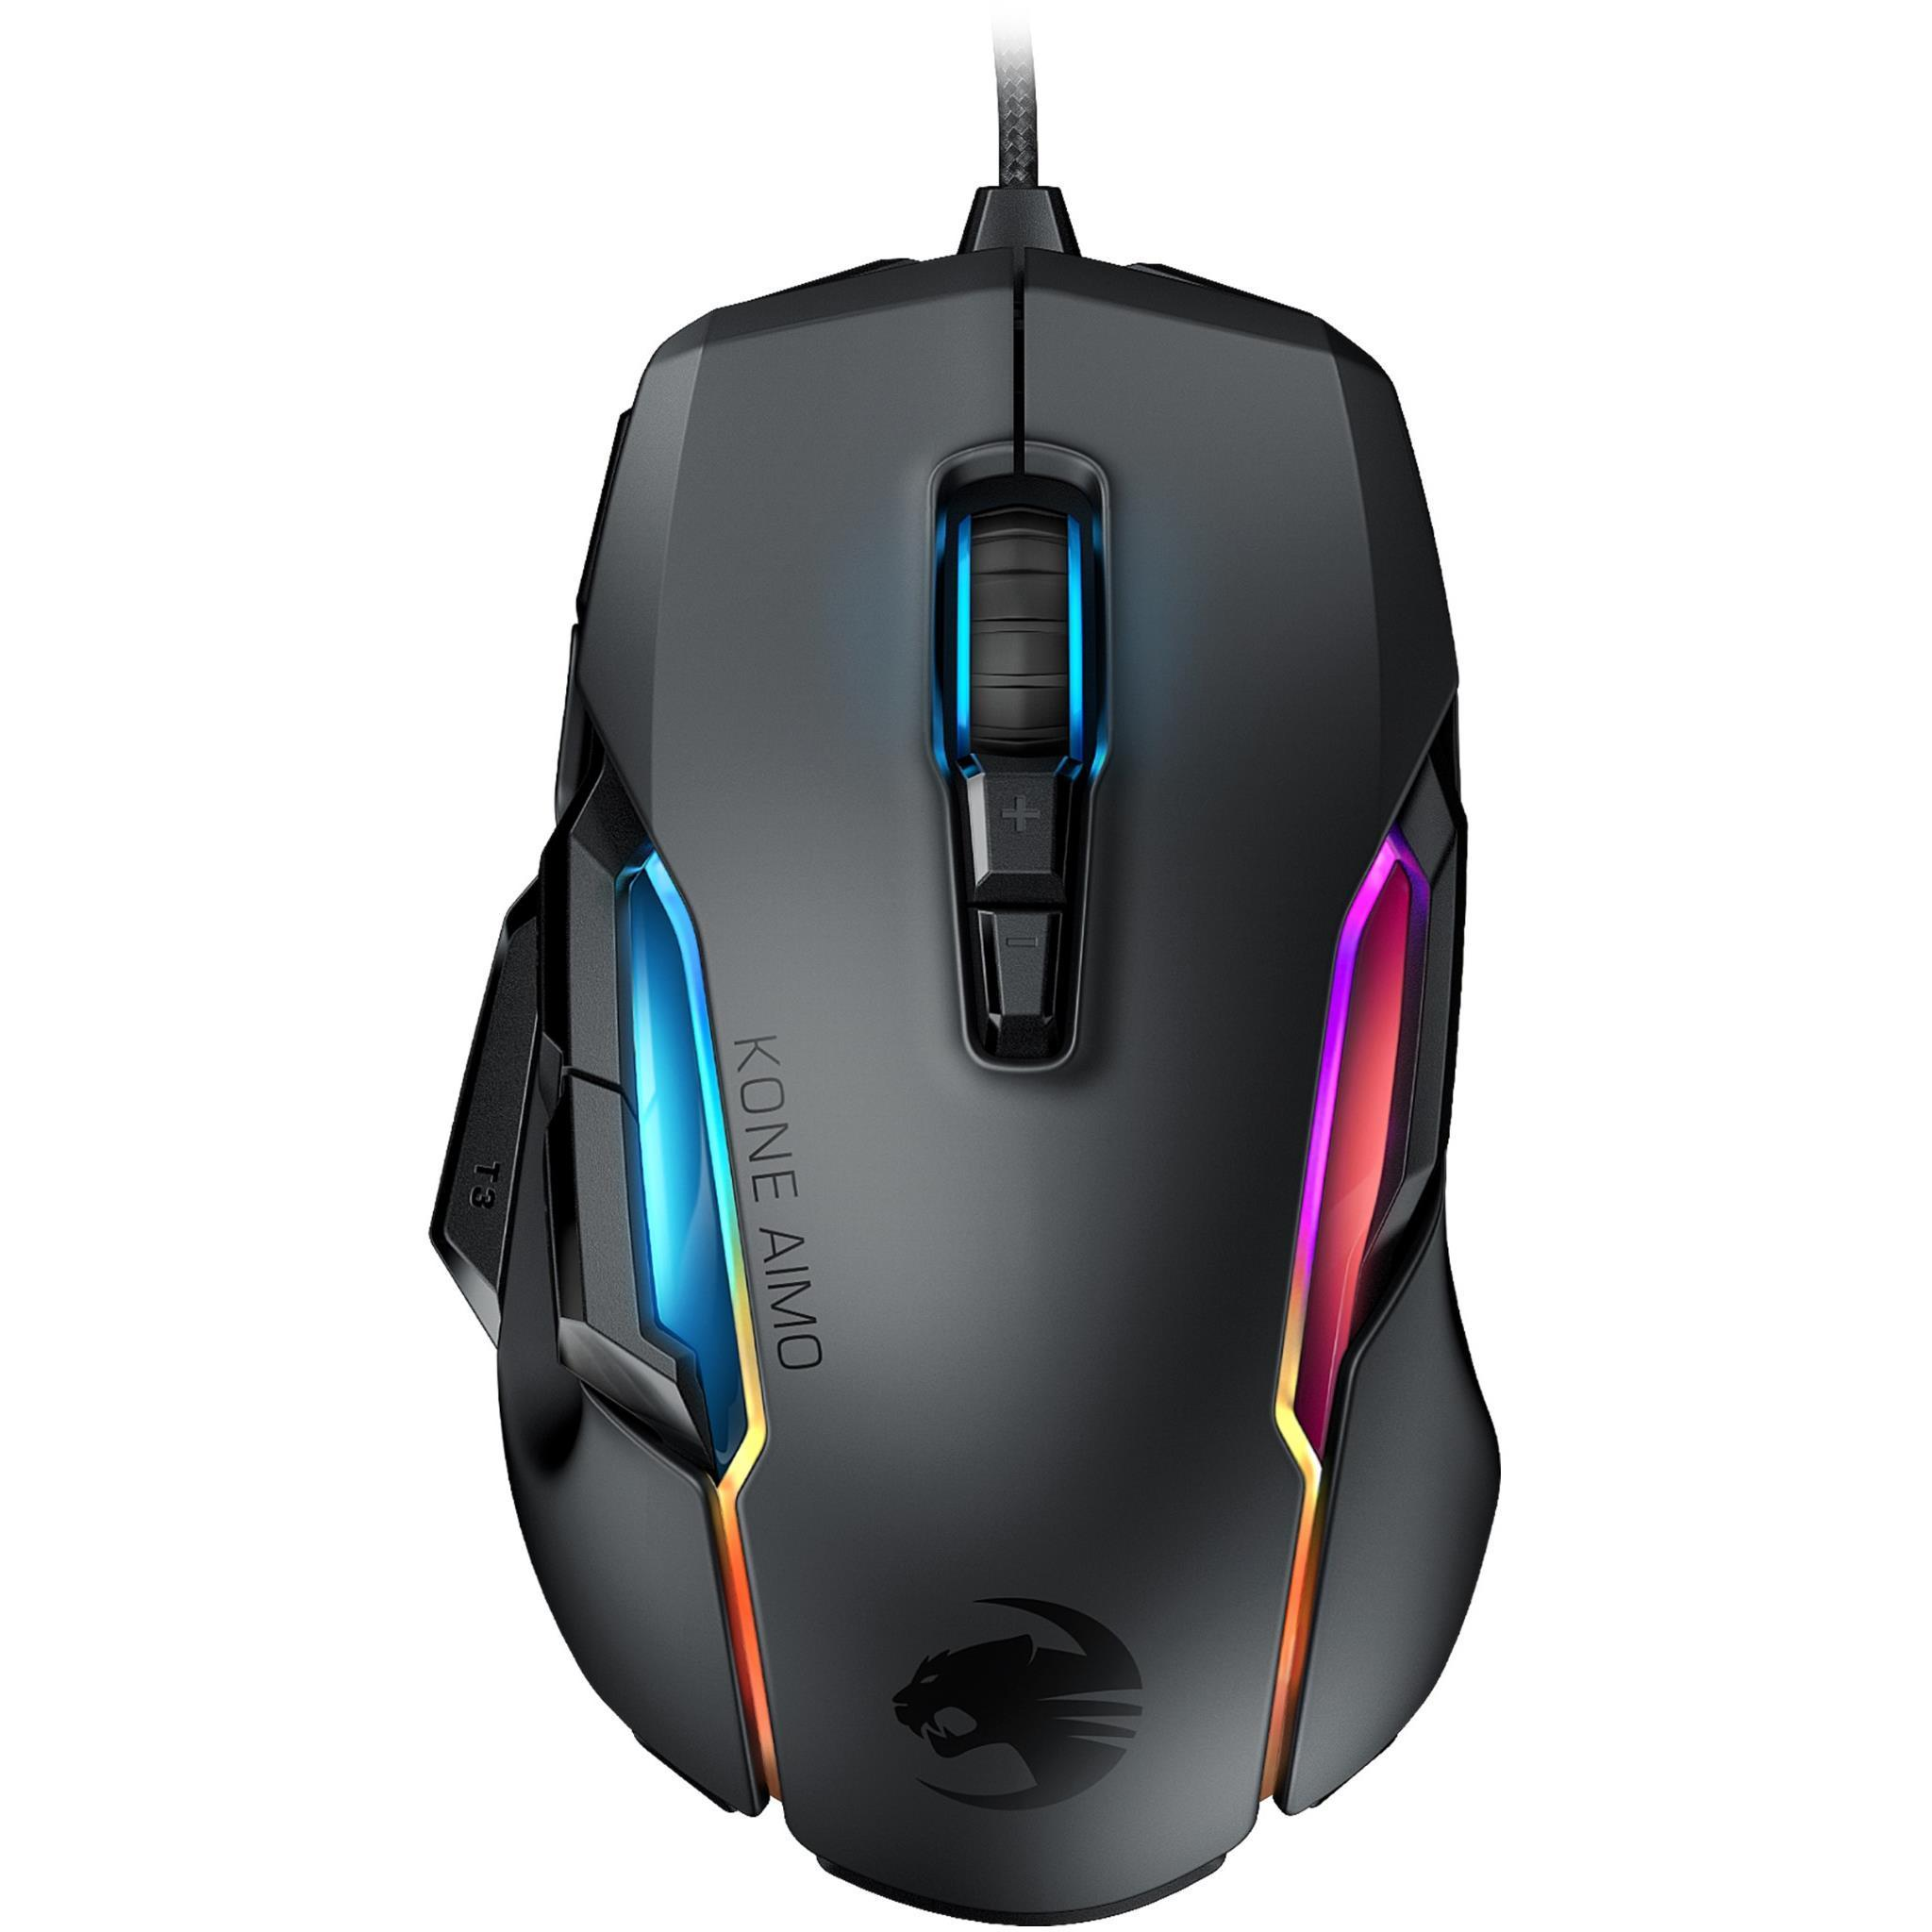 ROCCAT Kone AIMO RGB Gaming Mouse (Black)